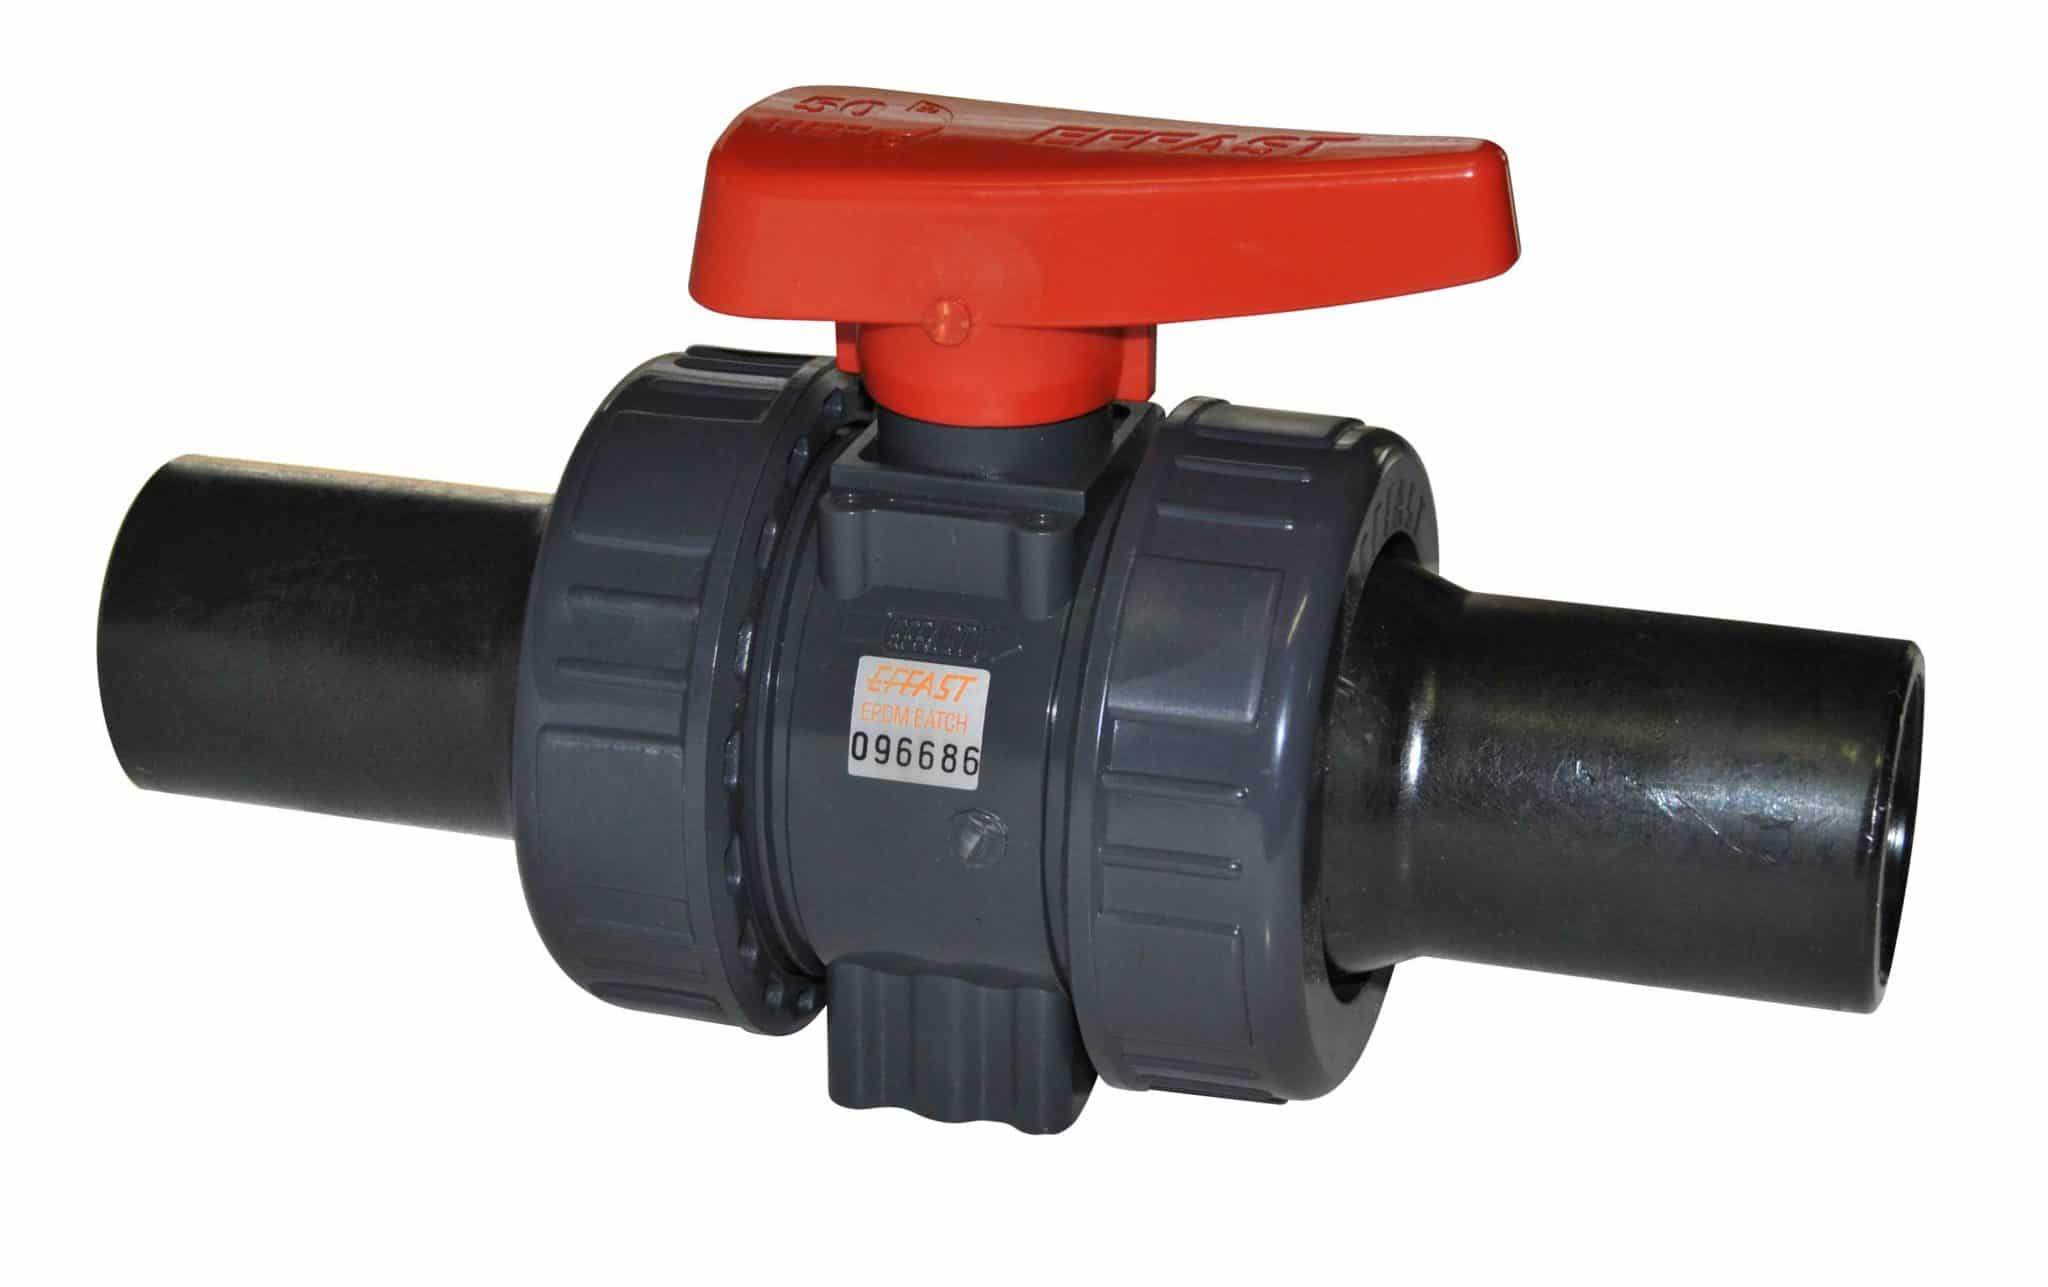 PVC-U Double union ball valve BK1 - EFFAST - 100% Made in Italy